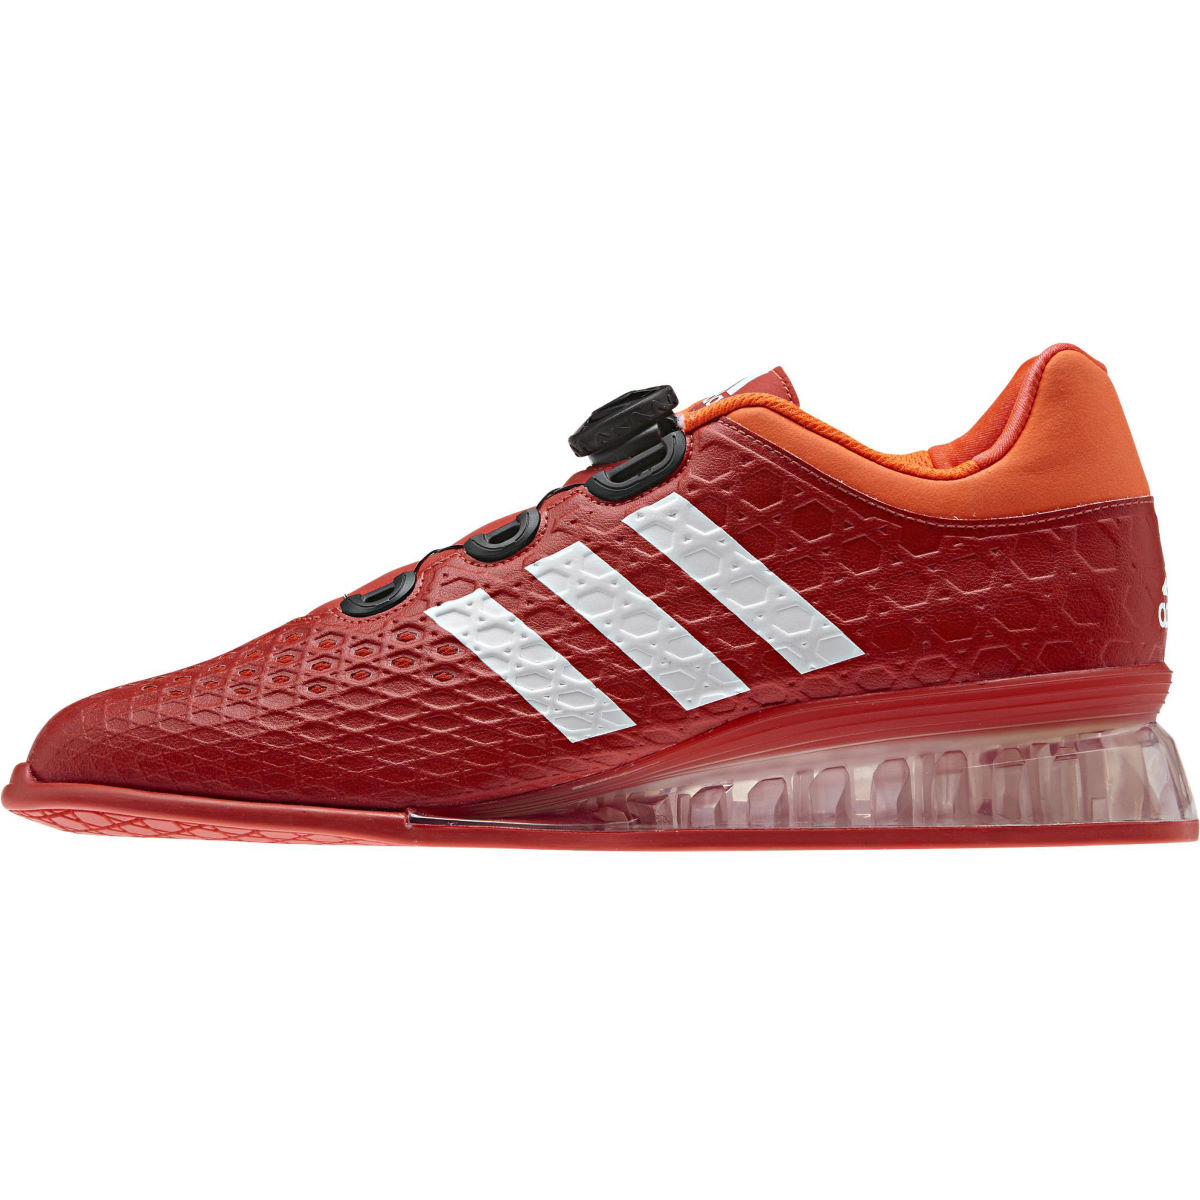 Adidas Leistung 16 Weightlifting Shoes (AW16)   Training Running Shoes